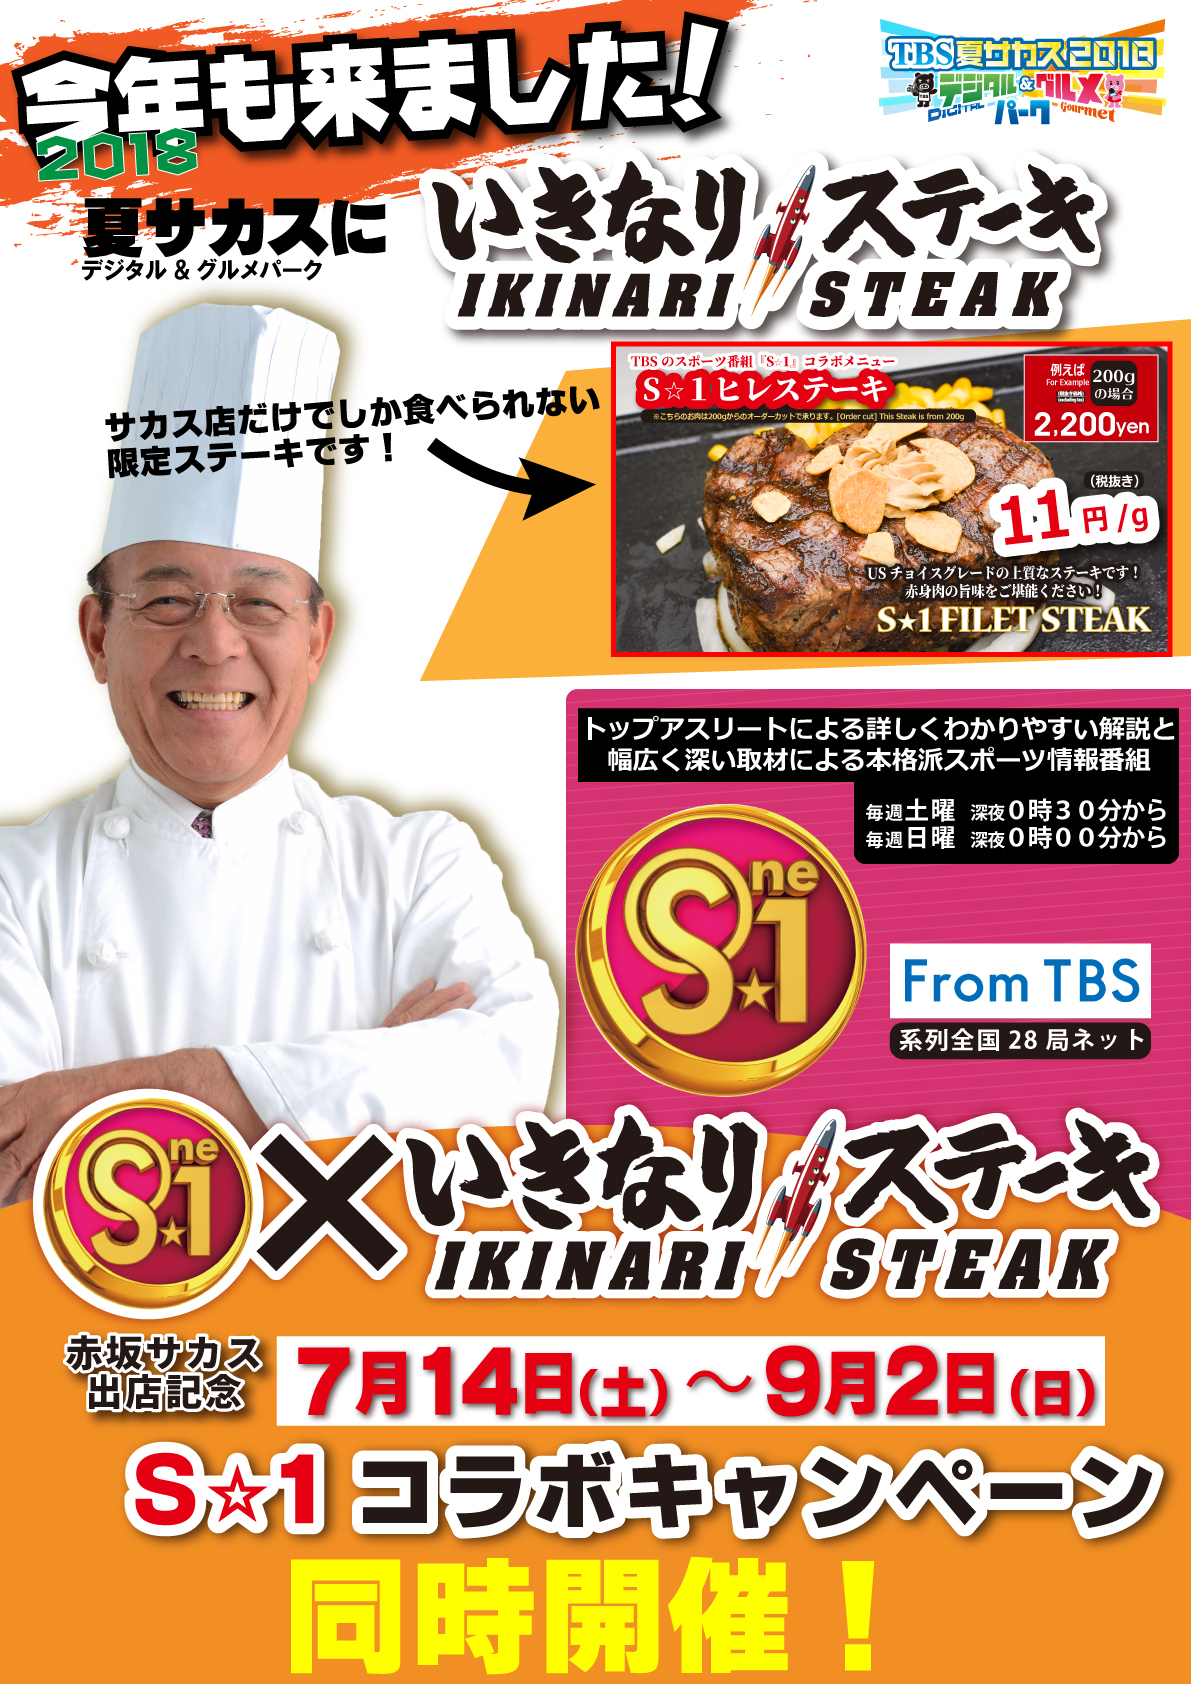 TBS is smart this year in the summer in sakasu! Steak comes up!